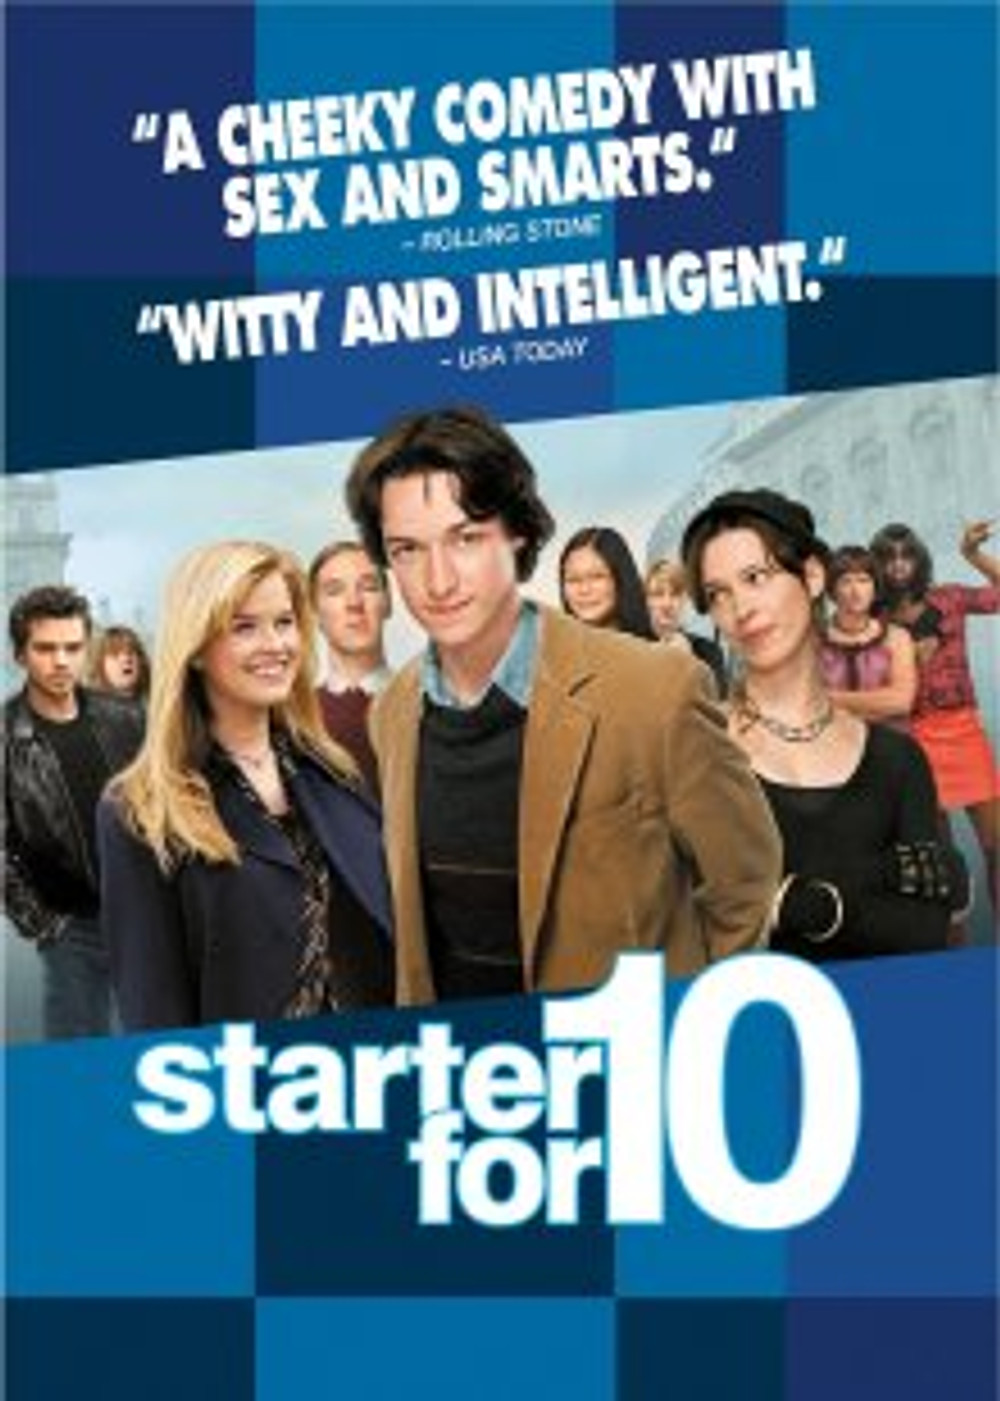 FILM1 Starter for 10 - Official Poster - http---www.dvdsreleasedates.com-covers-starter-for-10-dvd-cover-21.jpg